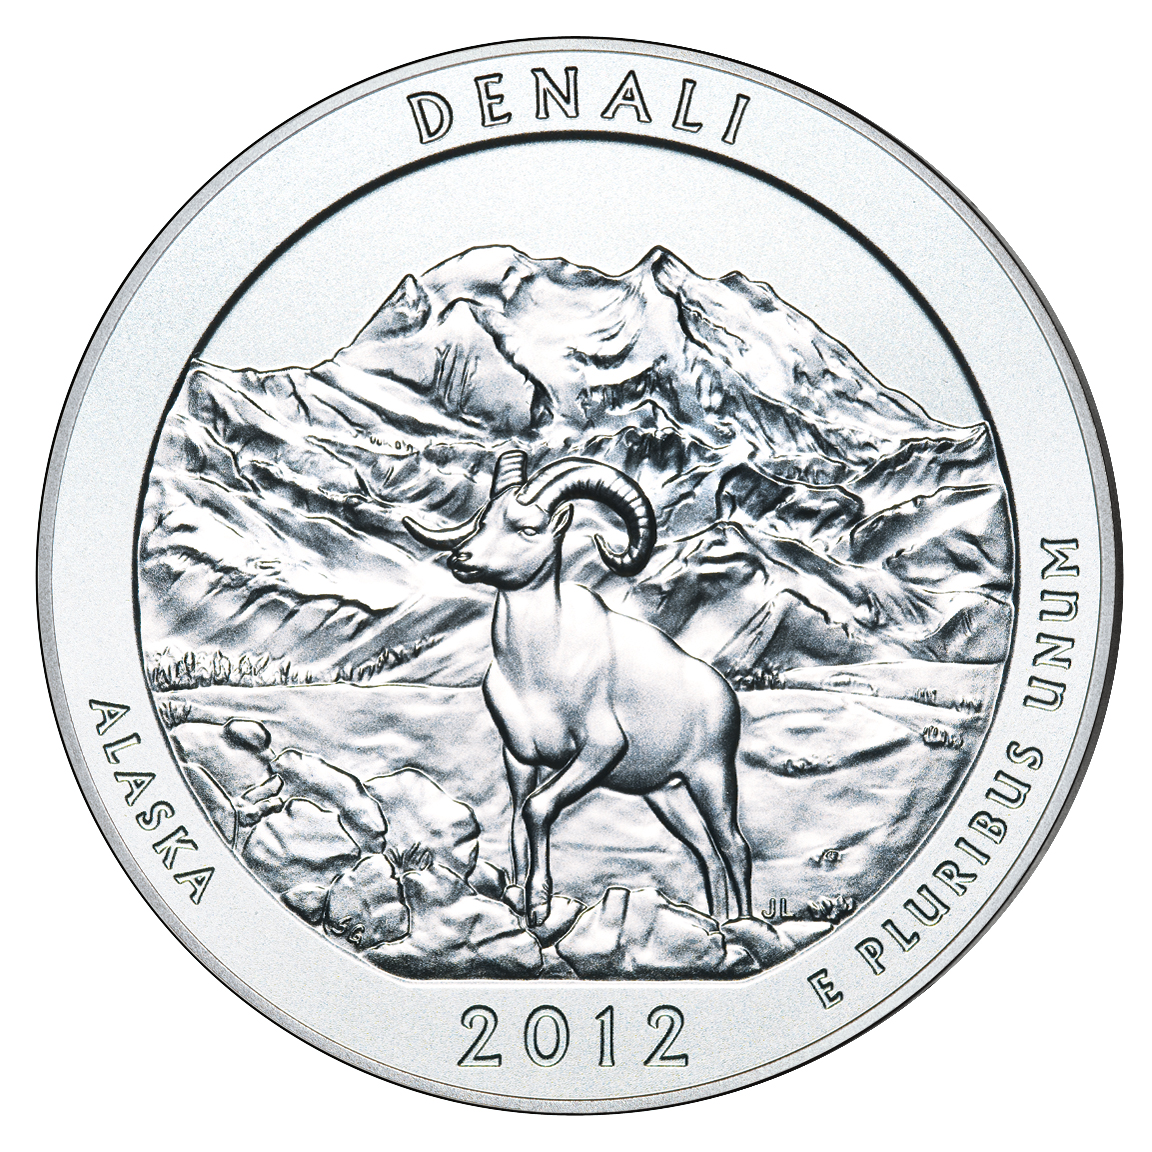 2012 America The Beautiful Quarters Five Ounce Silver Uncirculated Coin Denali Alaska Reverse